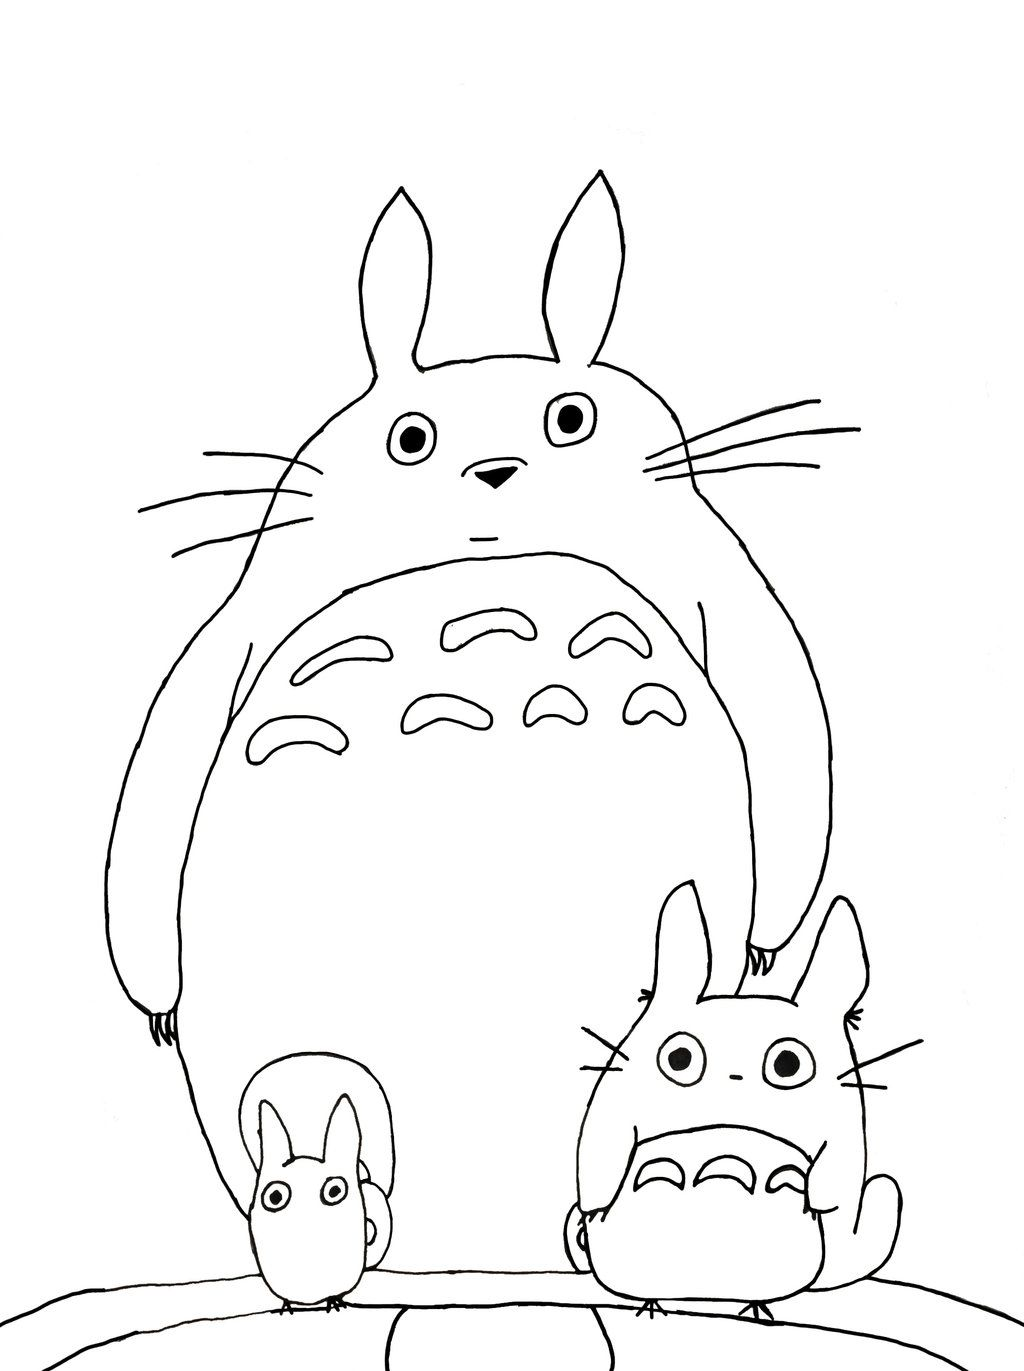 Totoro coloring pages coloring home, fun coloring pages